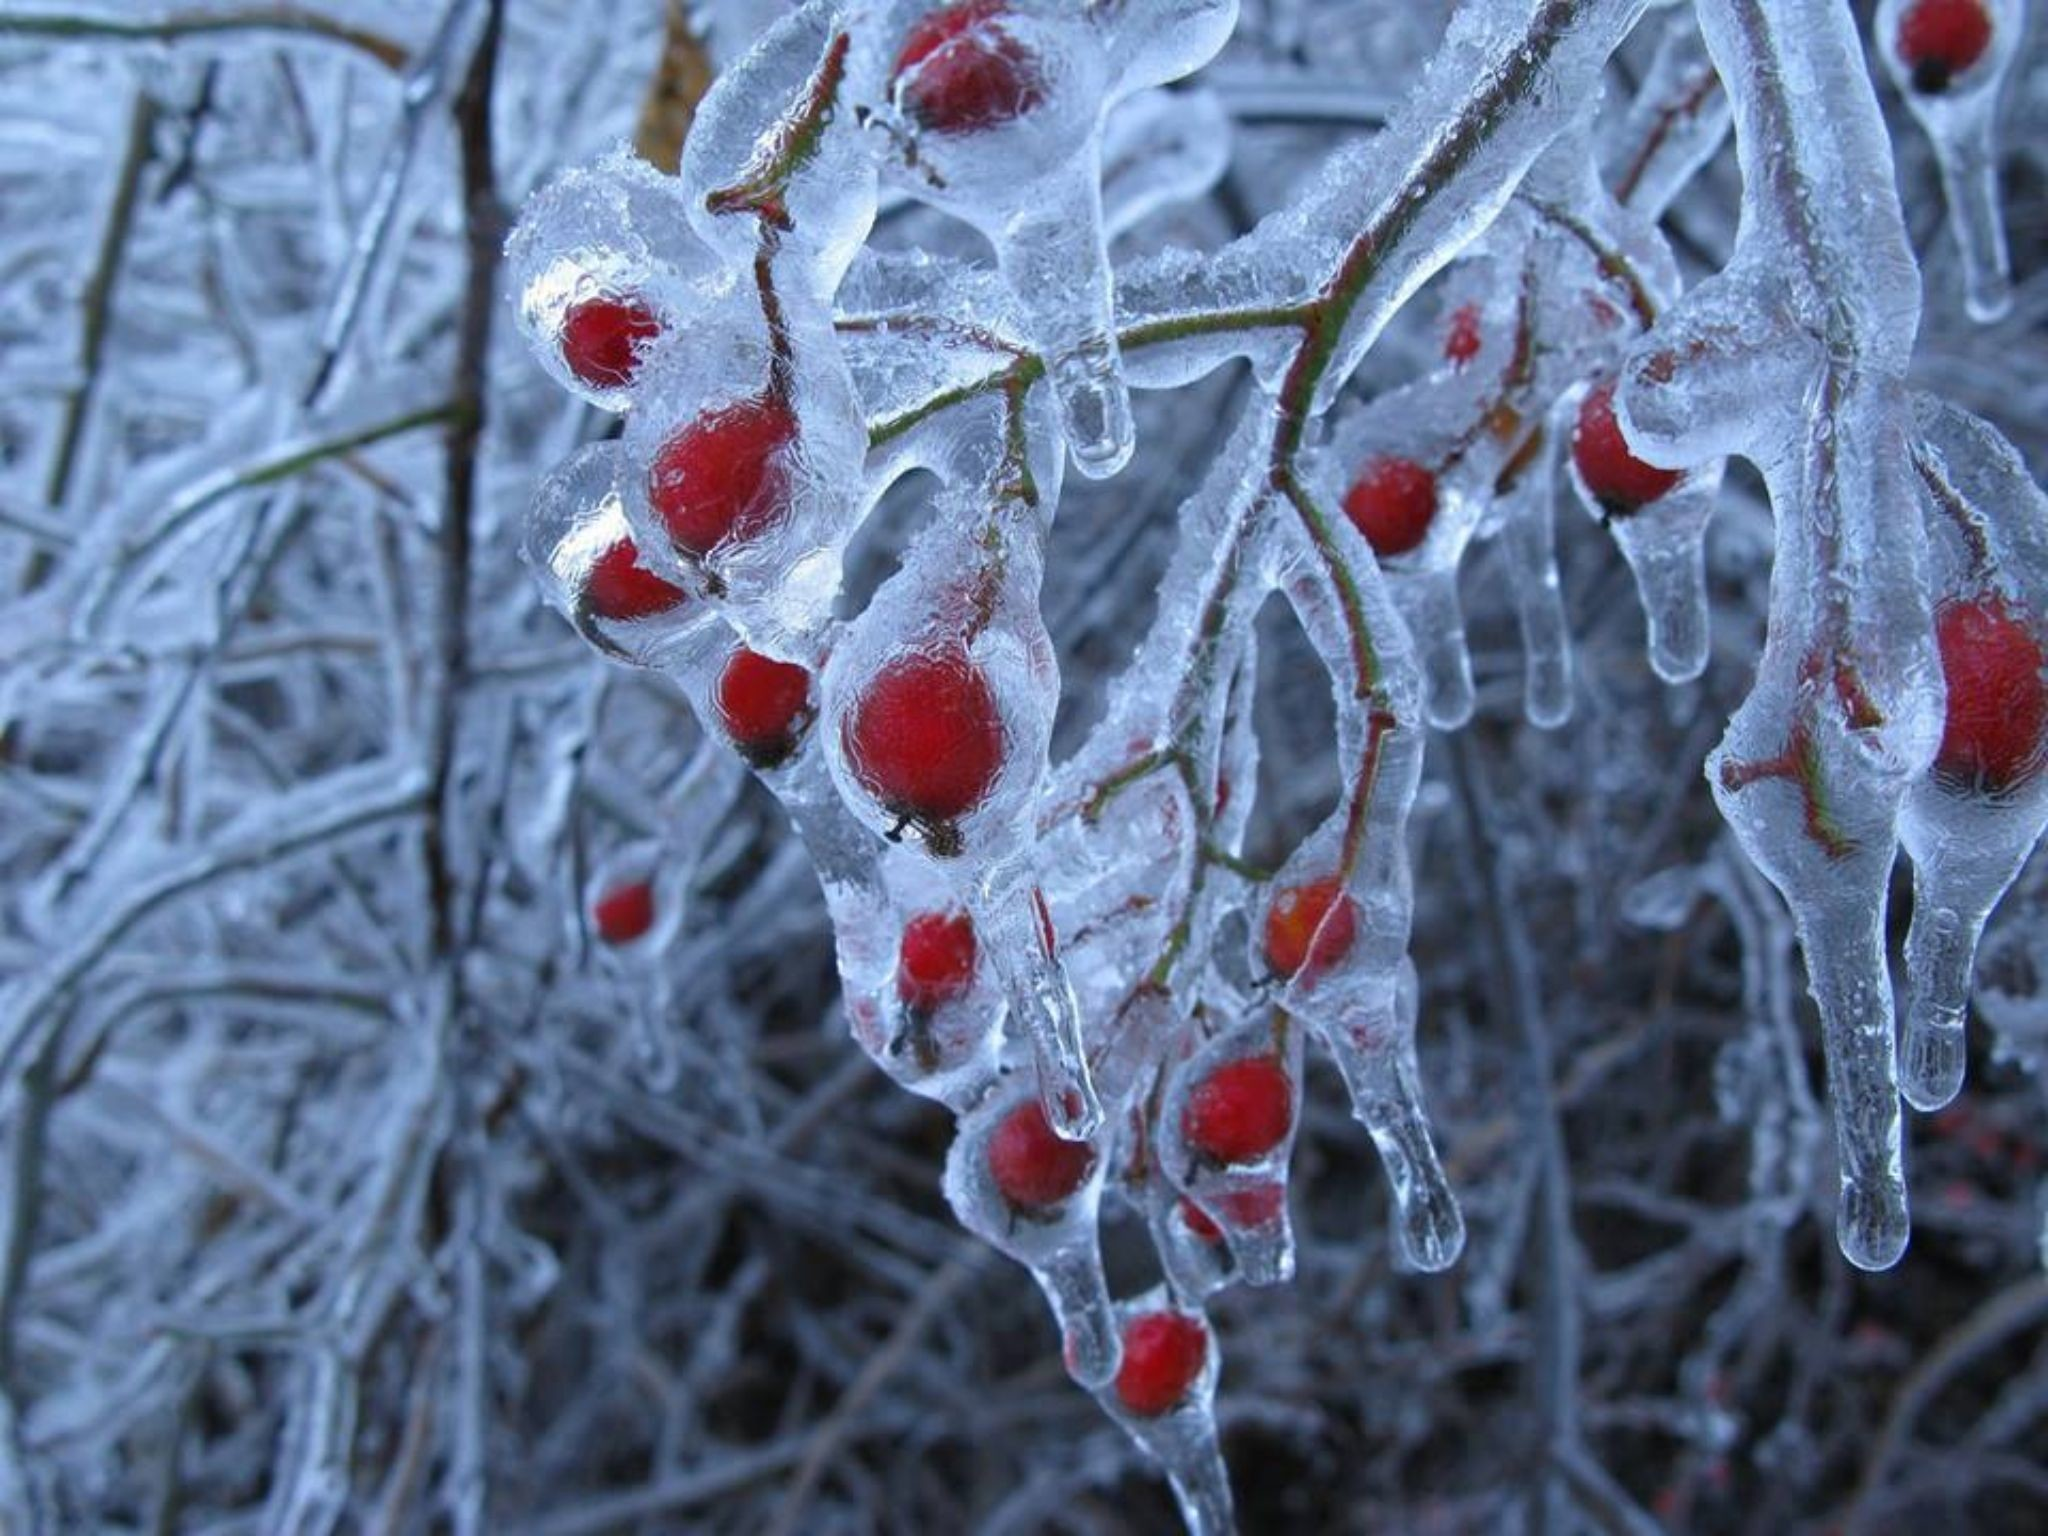 2048x1536 Snow And Ice, Extreme Weather, Frozen Cherries, Winter Berries, Red Berries